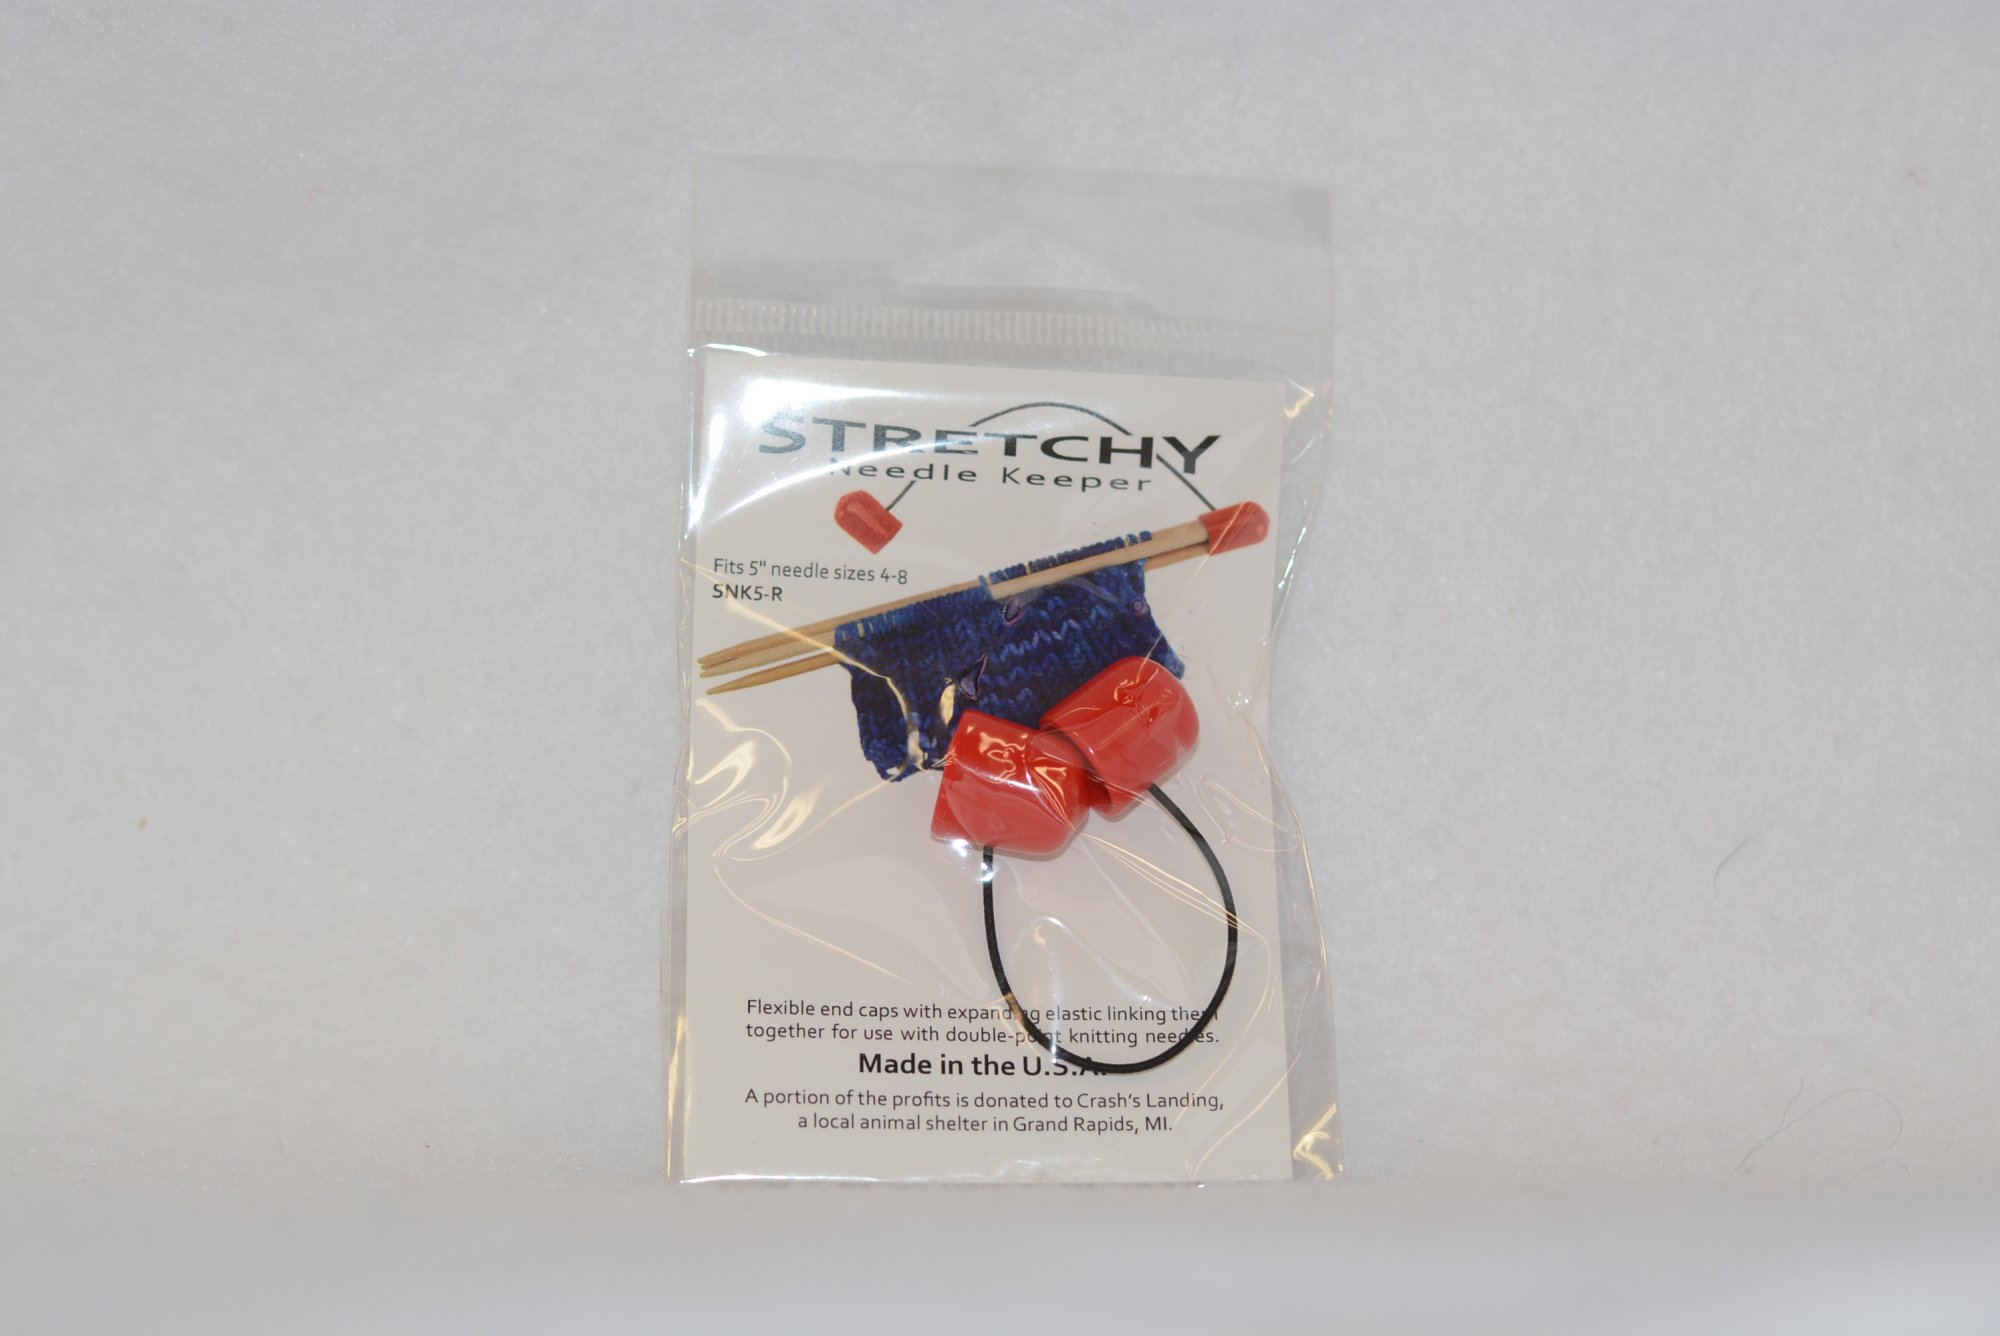 Stretchy Needle Keepers for 5 DPN needles - 4-8